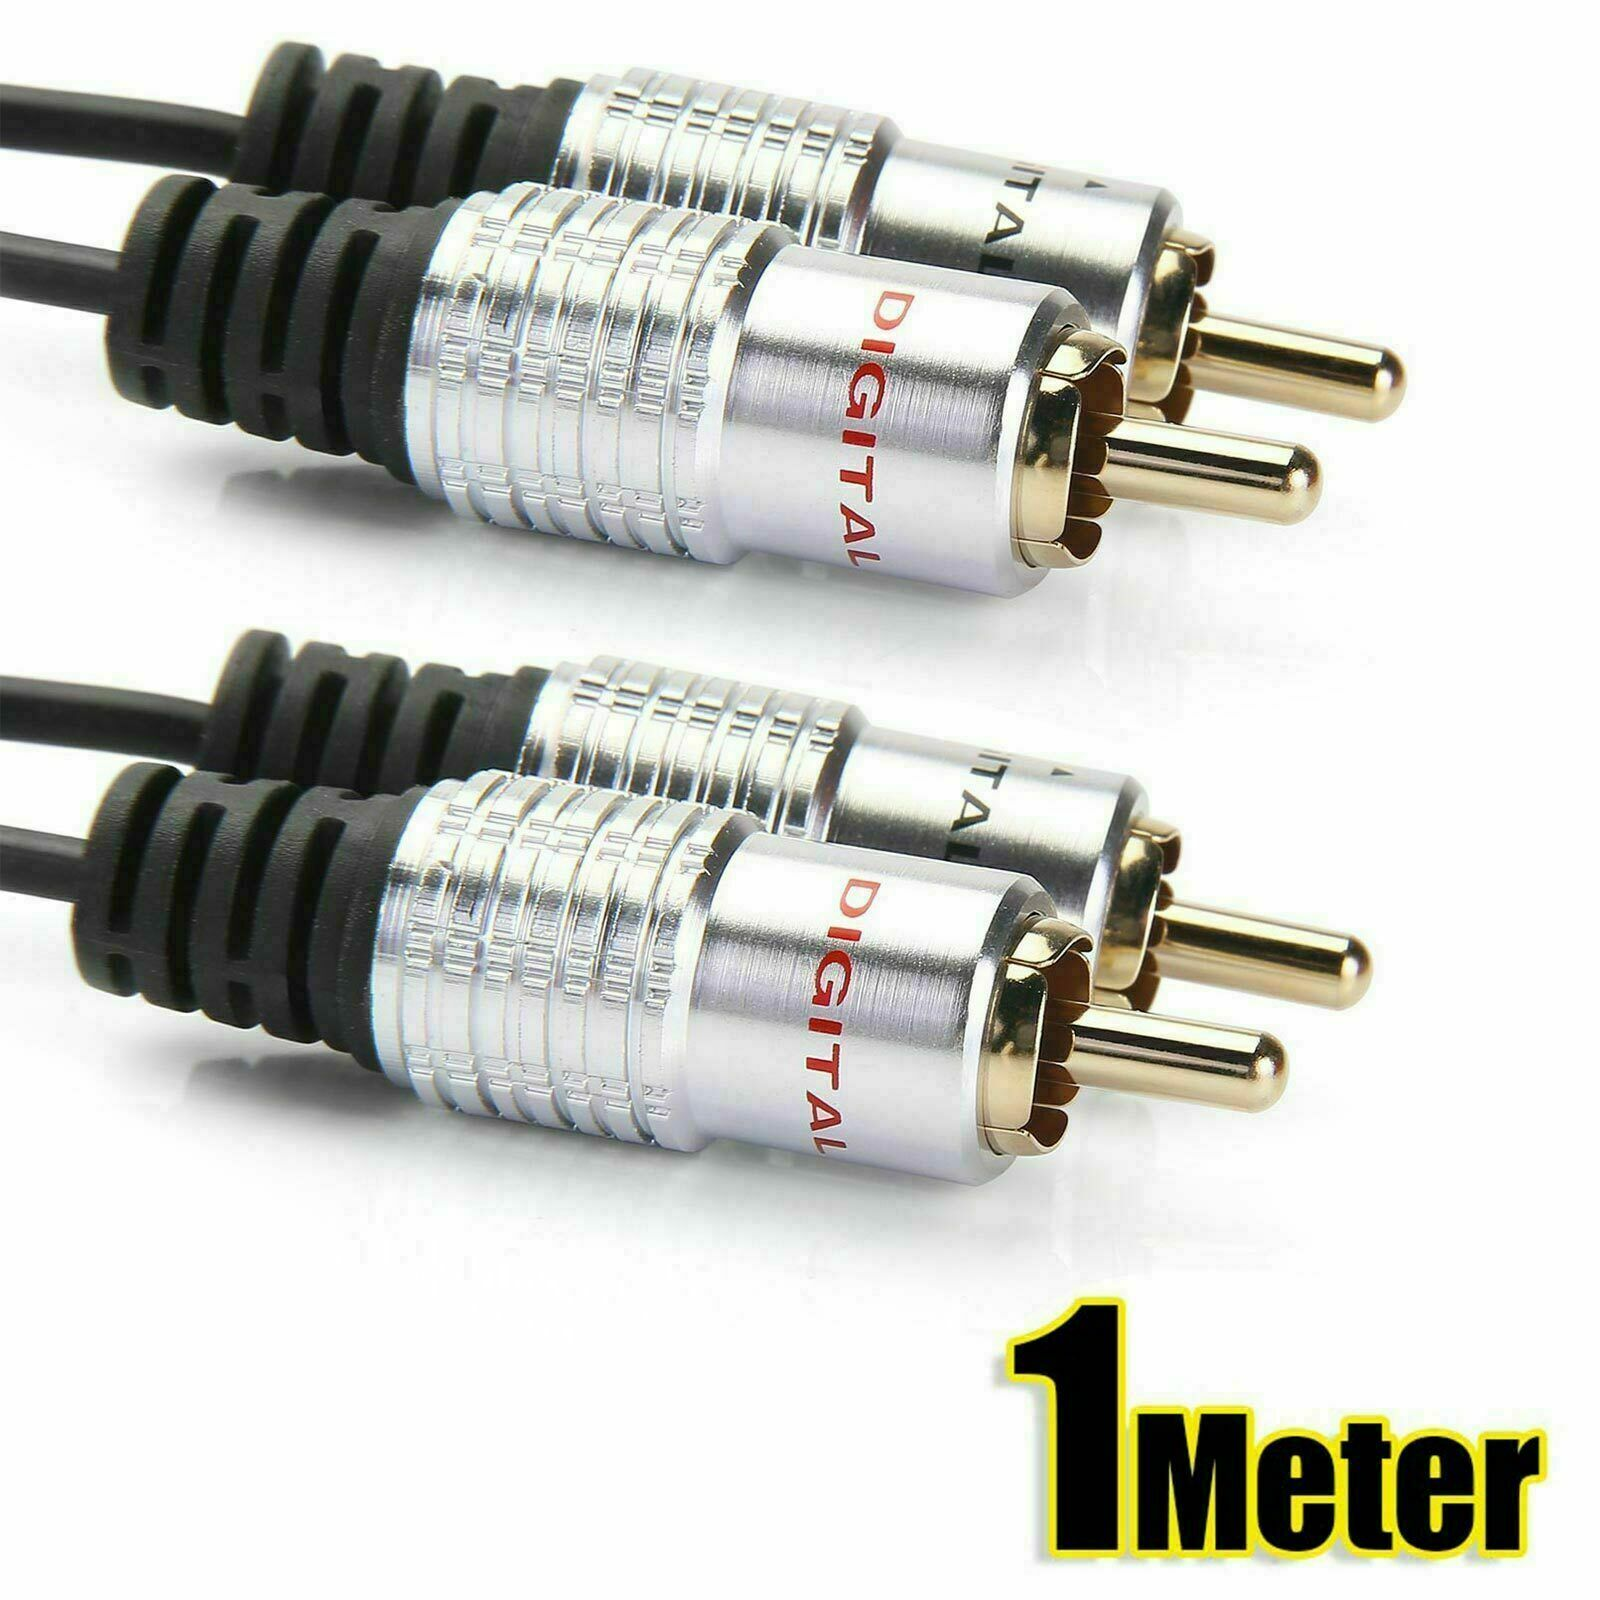 Pro Audio OFC Metal 2 RCA Phono Plugs to Plugs Cable Lead Gold Twin RCA 1Meter